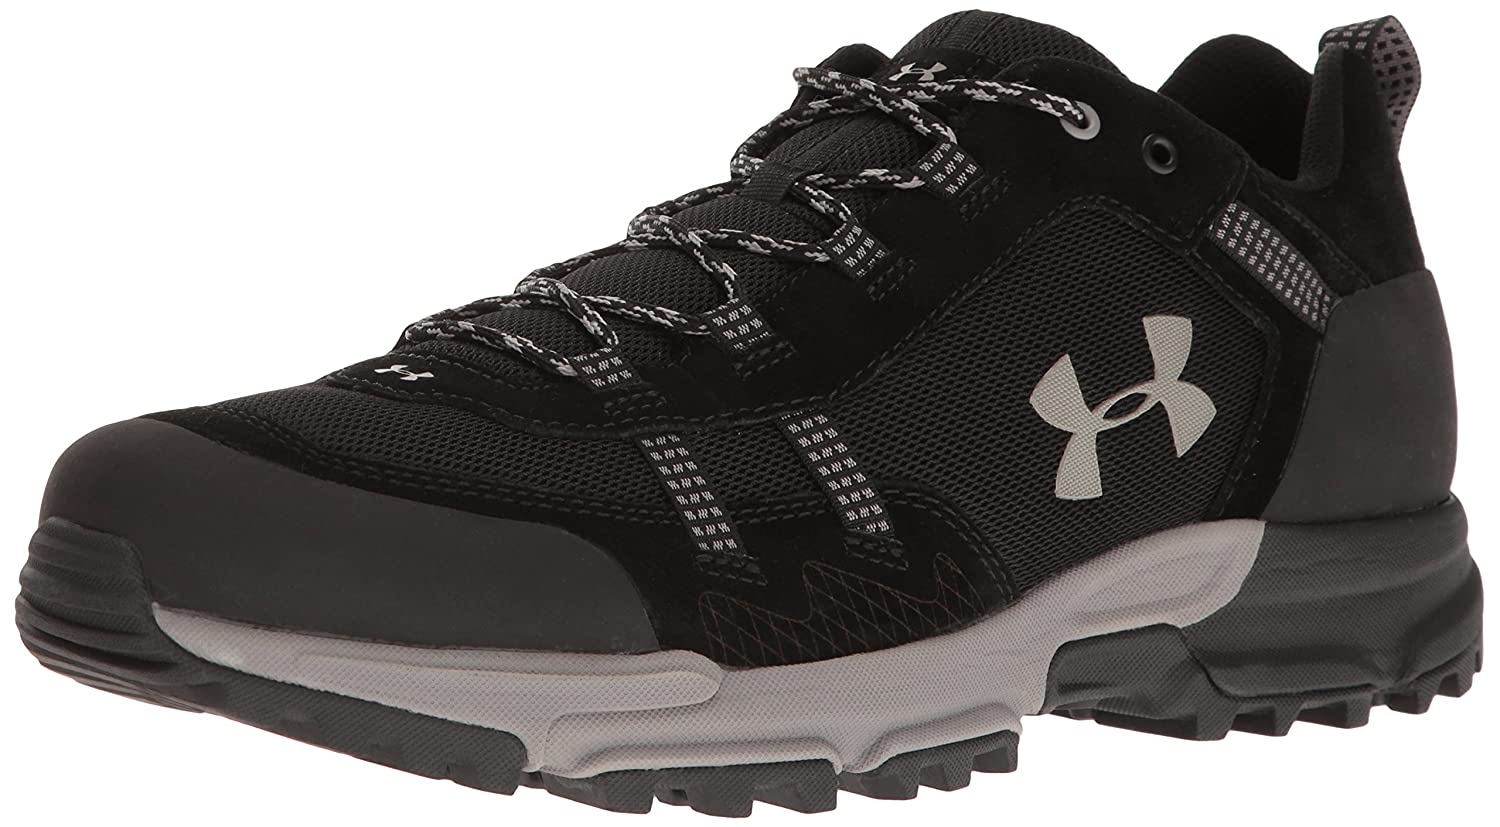 buy popular 45296 8b437 Amazon.com   Under Armour Womens Post Canyon Low Cross-Trainer Shoe    Hiking Shoes